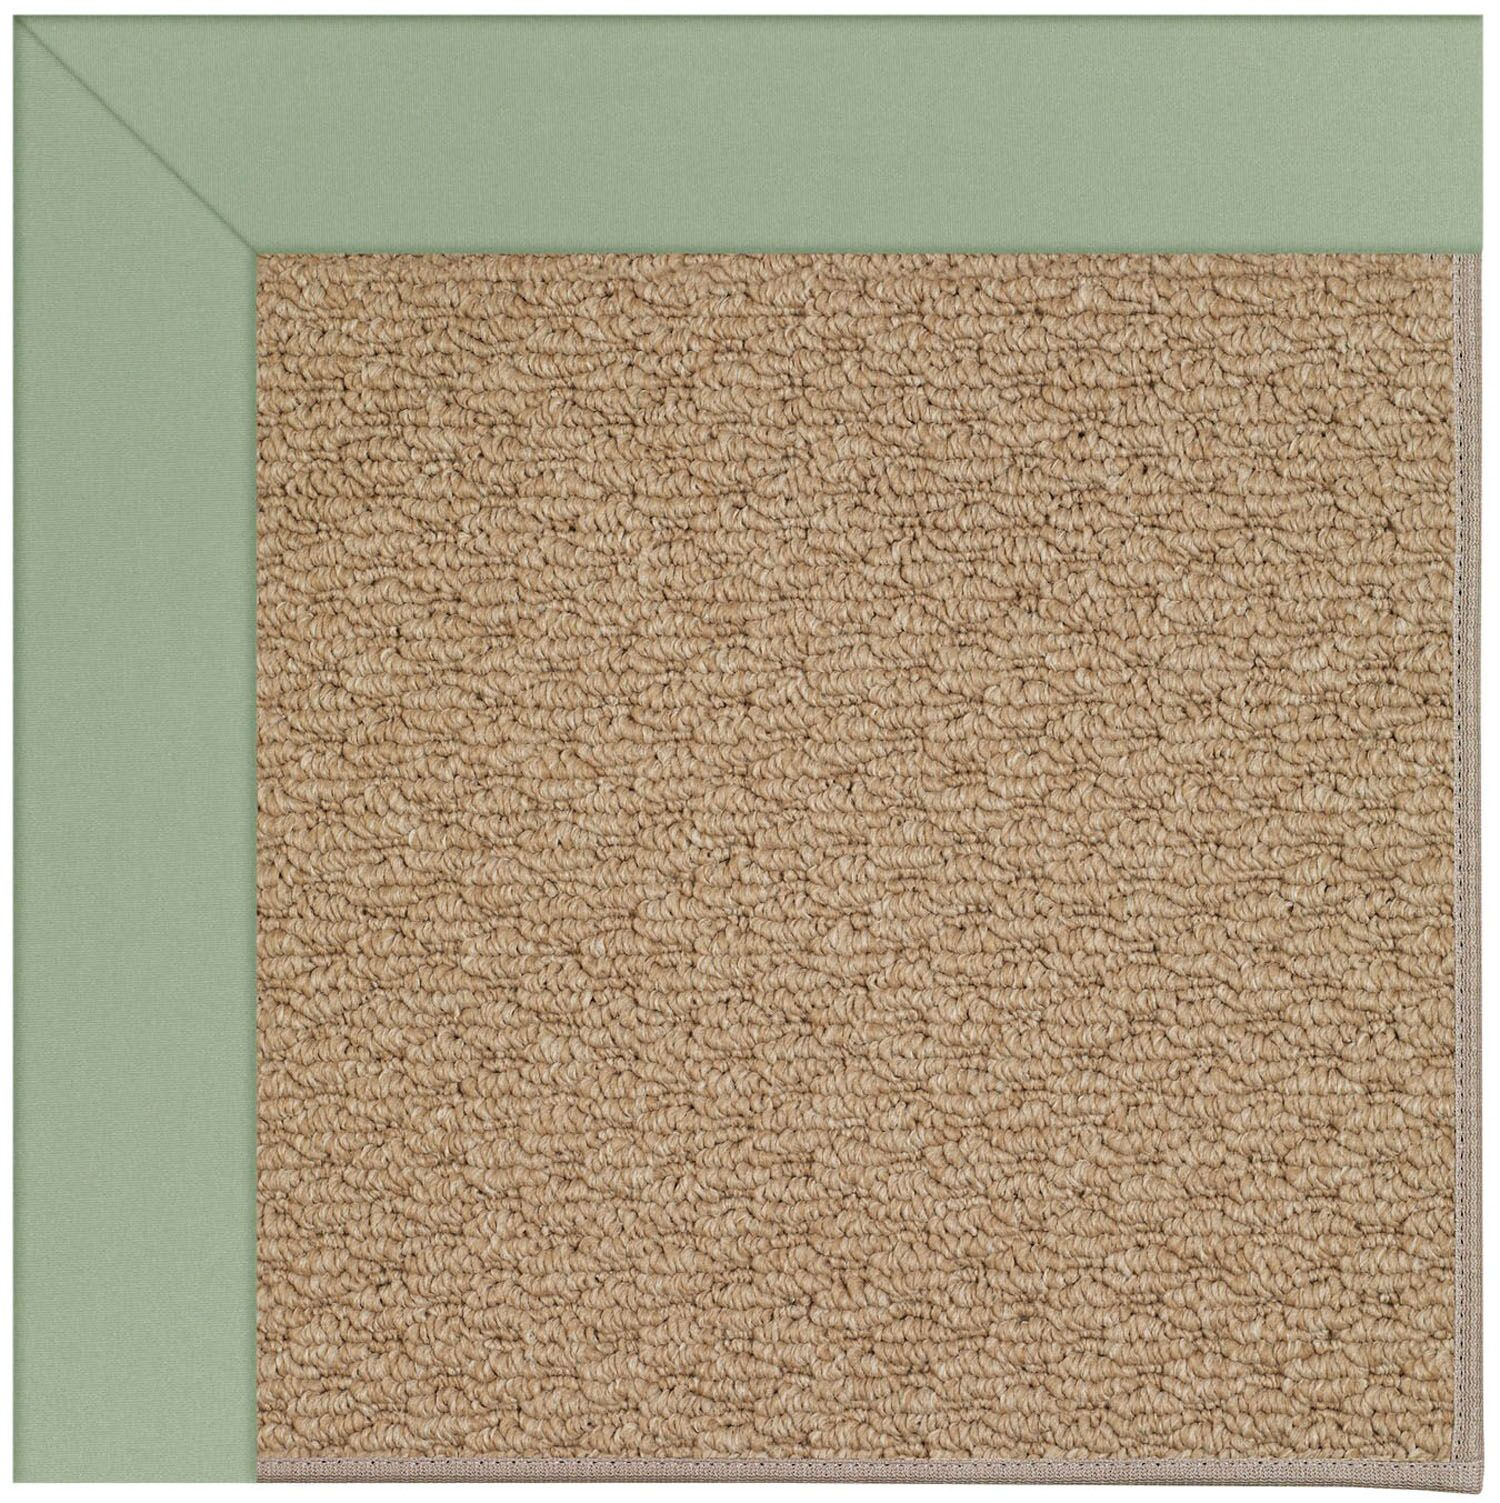 Lisle Machine Tufted Light Jade/Brown Indoor/Outdoor Area Rug Rug Size: Rectangle 12' x 15'